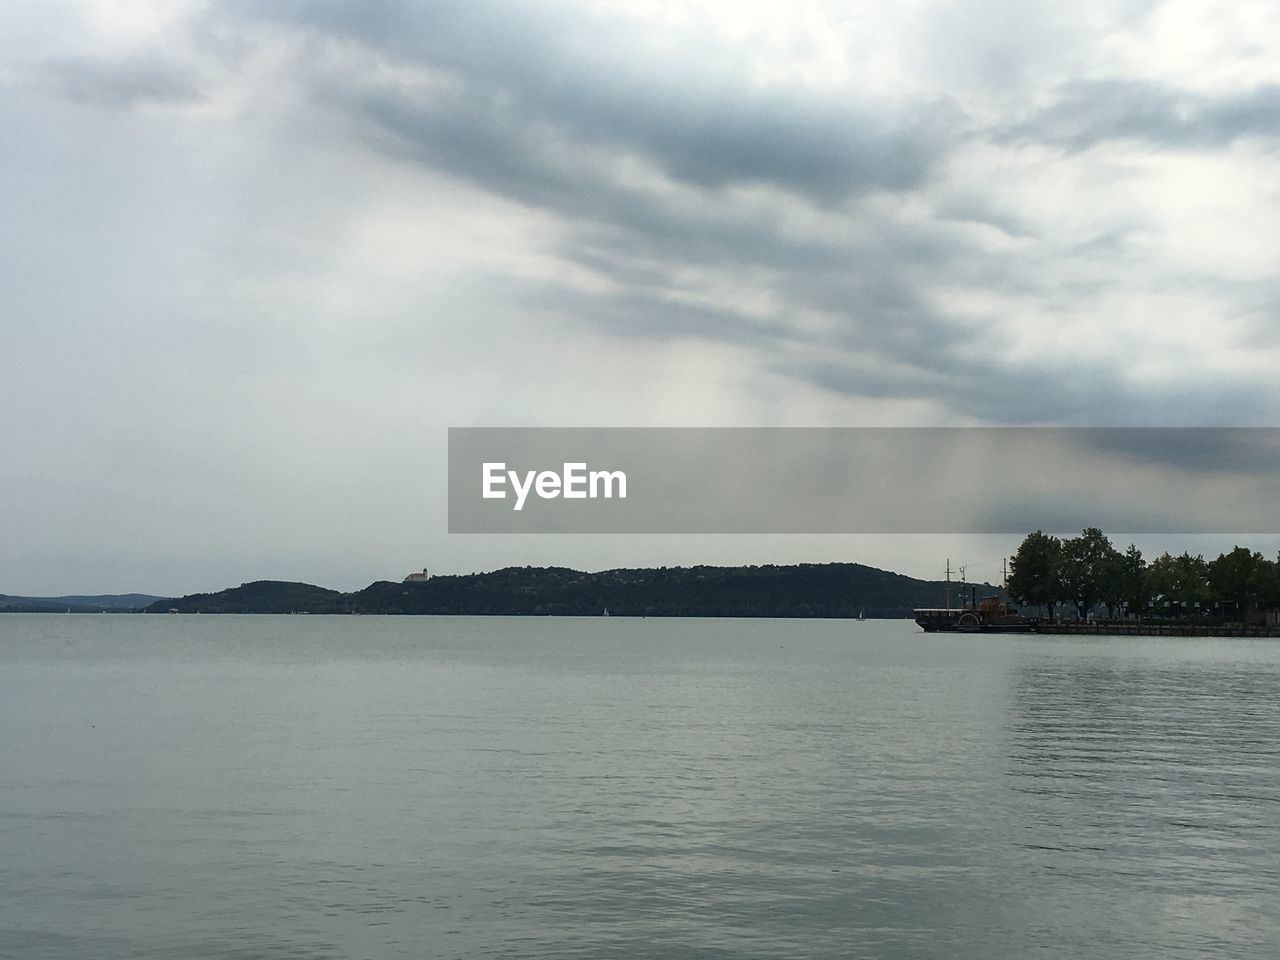 sky, cloud - sky, water, waterfront, scenics - nature, beauty in nature, tranquil scene, tranquility, nature, sea, no people, day, overcast, idyllic, outdoors, tree, non-urban scene, ominous